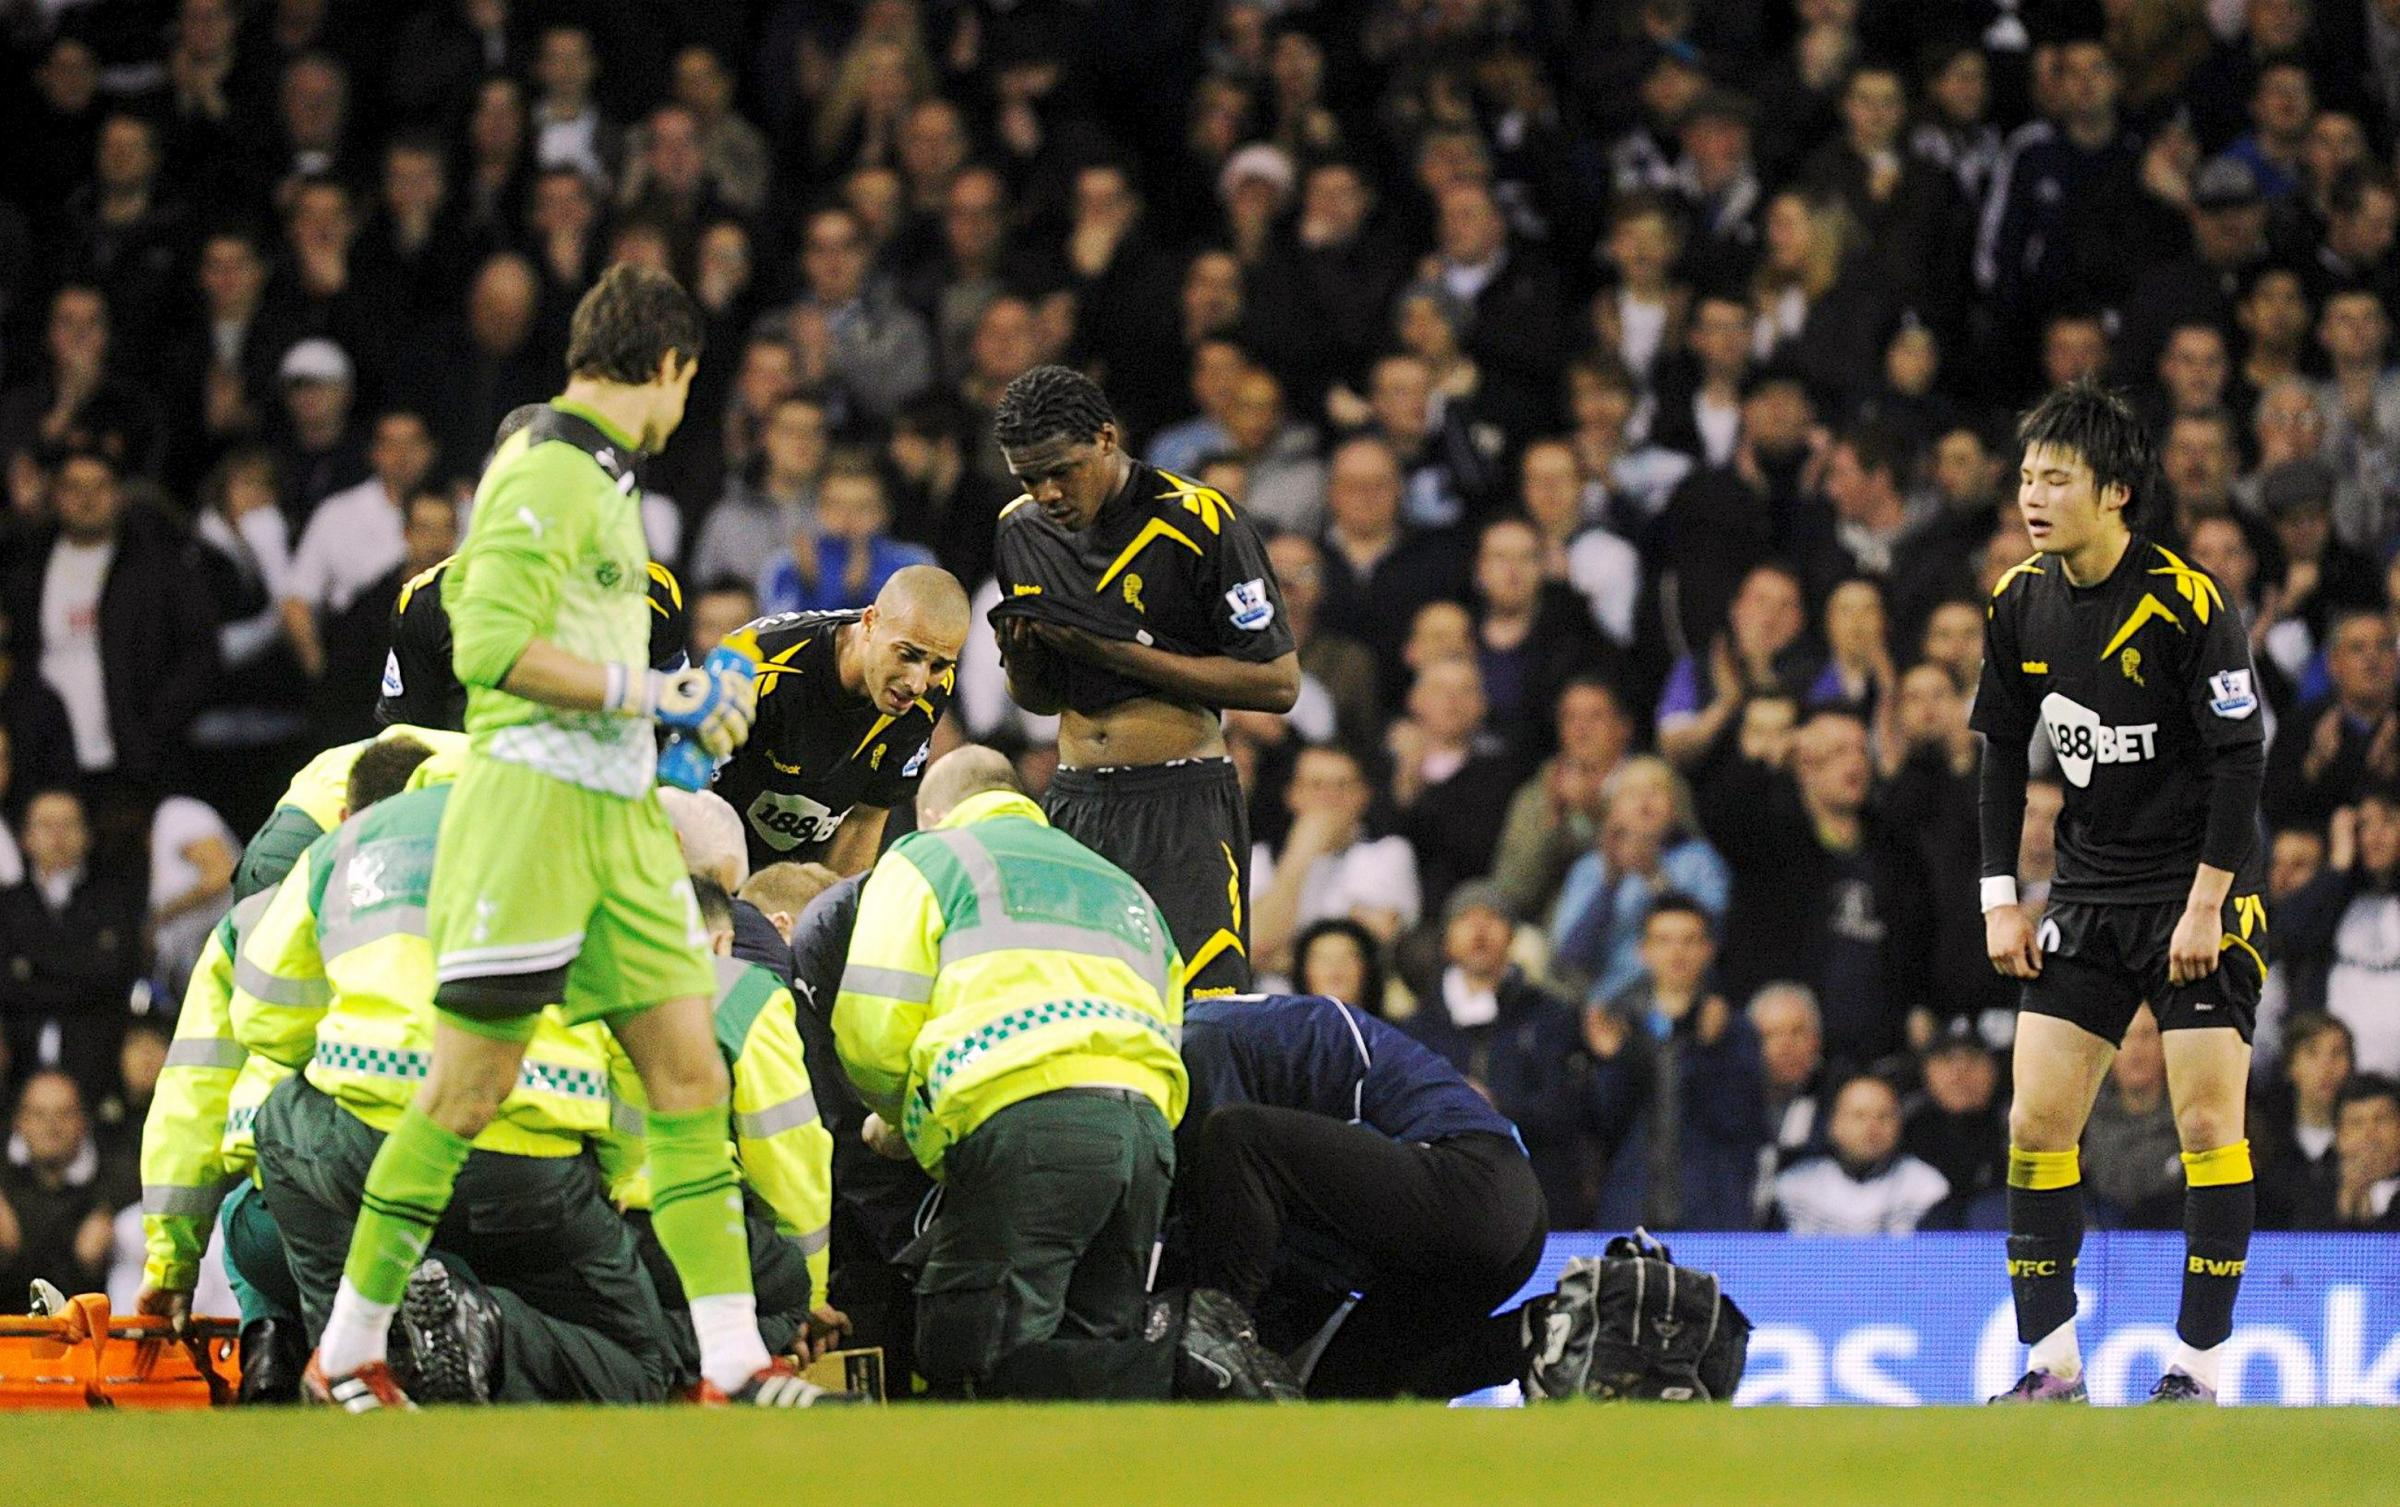 Two years today since miracle man Fabrice Muamba 'died' on pitch